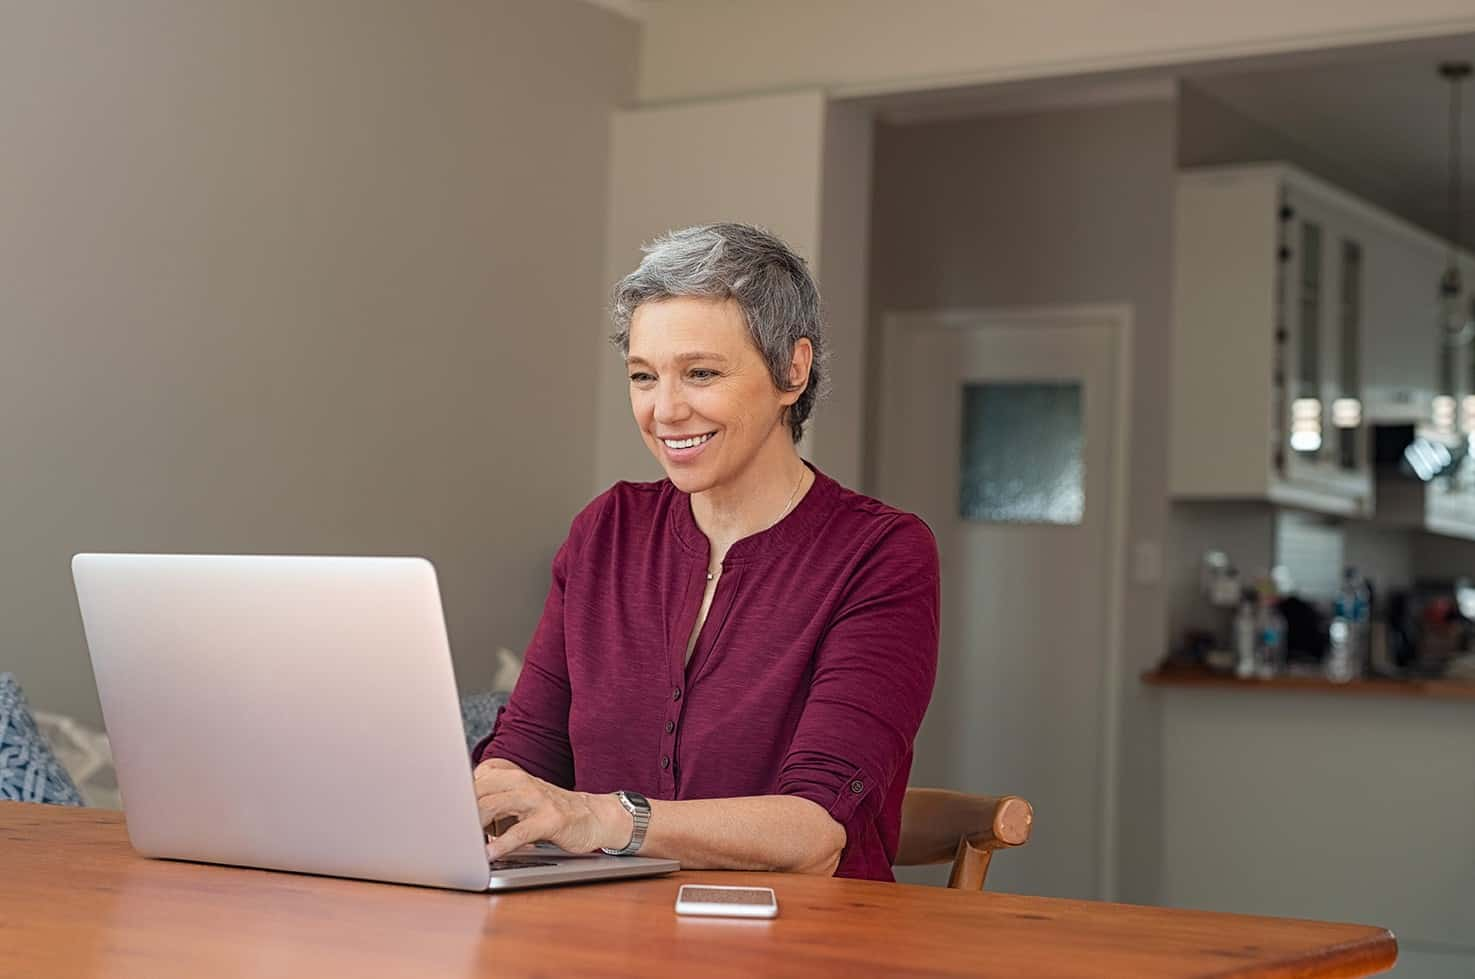 Beautiful senior woman using computer at home